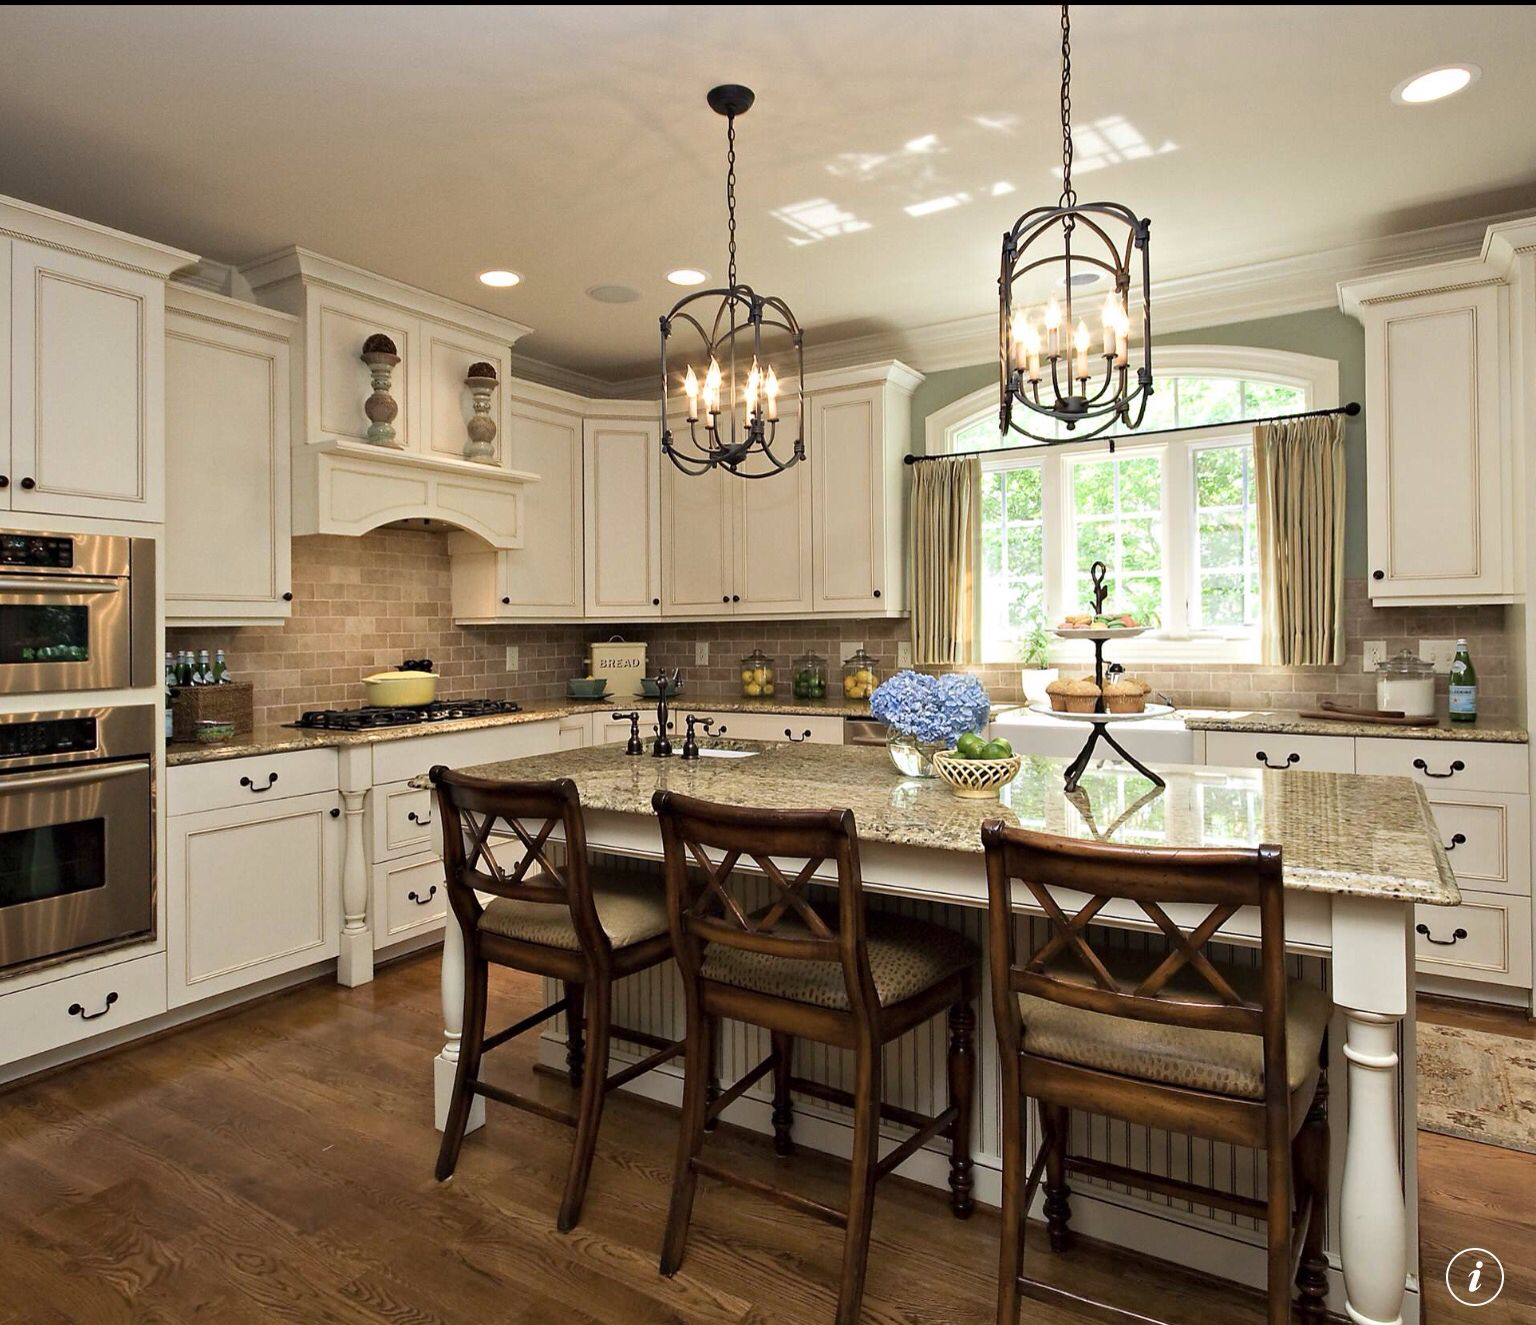 Traditional Off White Kitchen Cabinets: Off White Kitchen Cabinets, White Kitchen